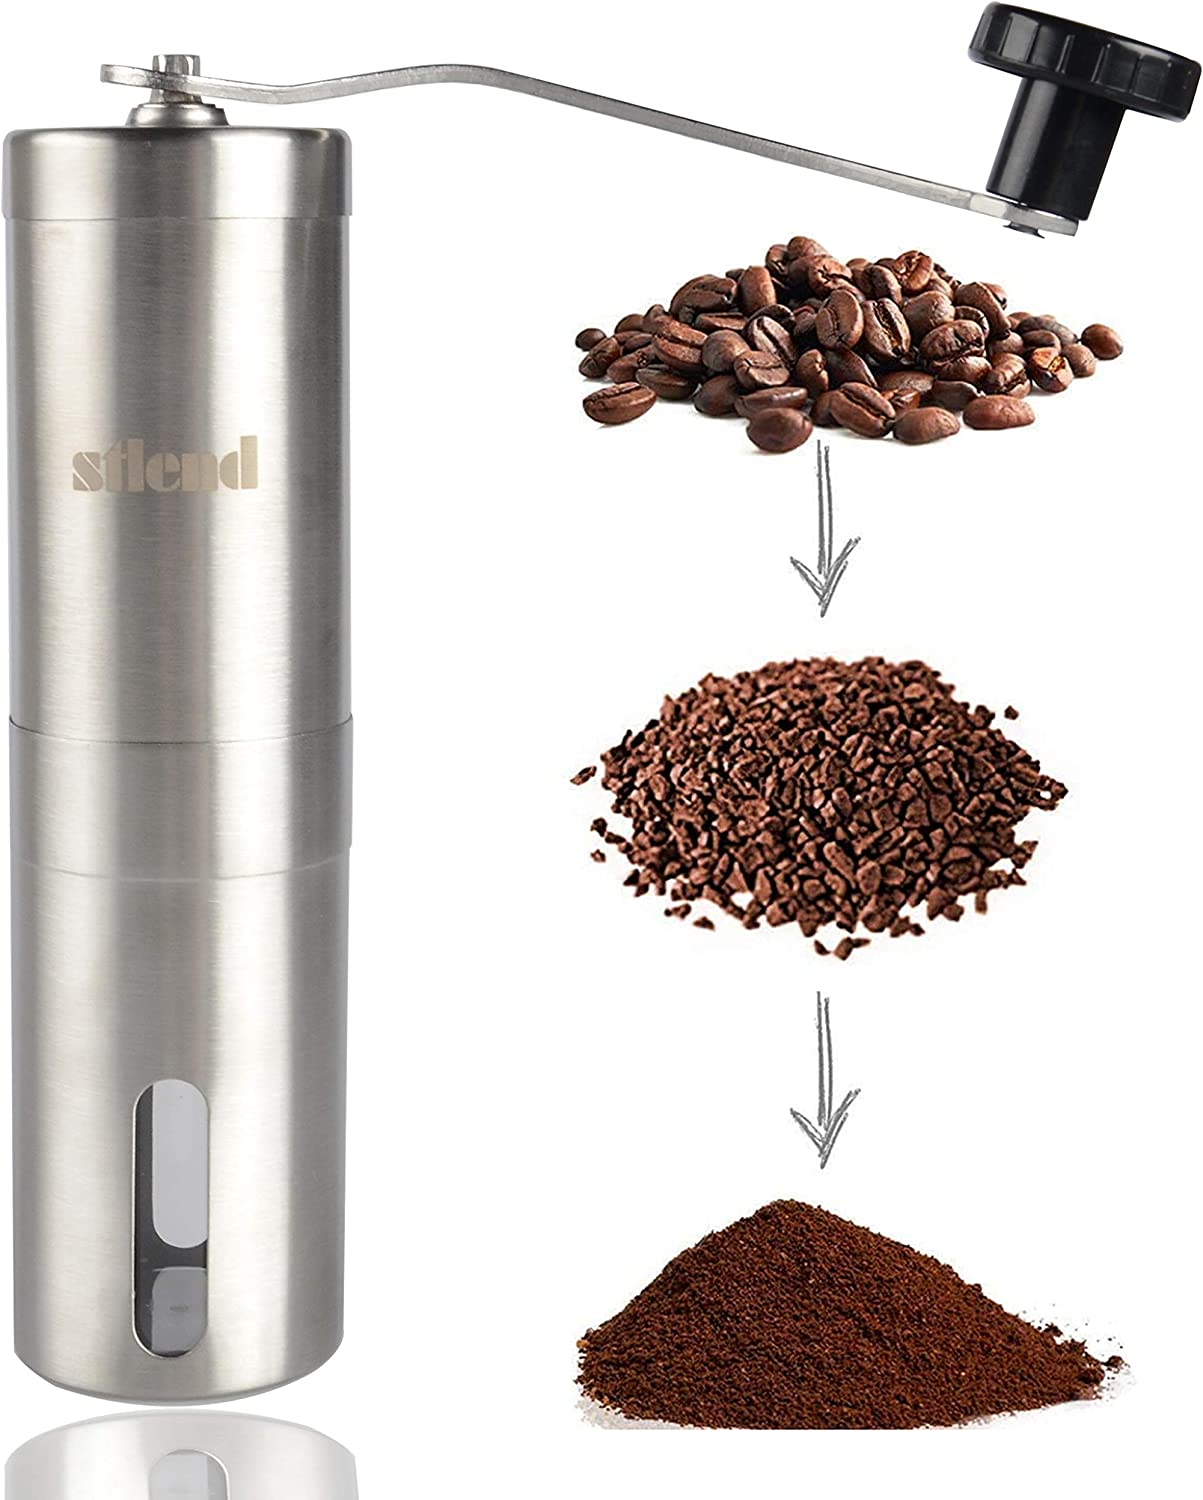 Max 56% OFF S-Tang Manual Coffee Grinder with National products Adjustable - B Setting Conical